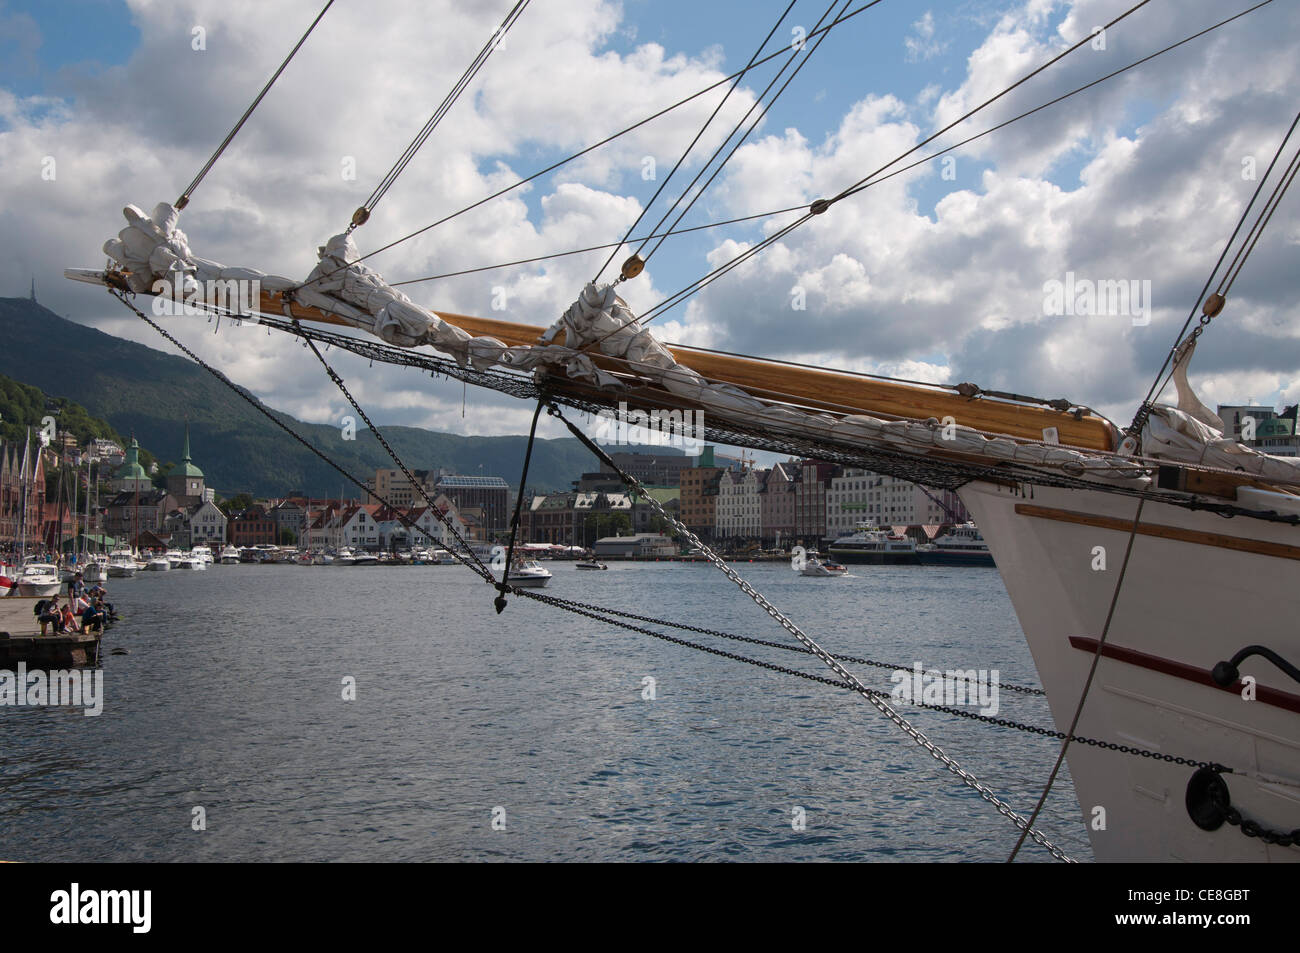 bows of tall ship in port at Bergen Norway Europe - Stock Image